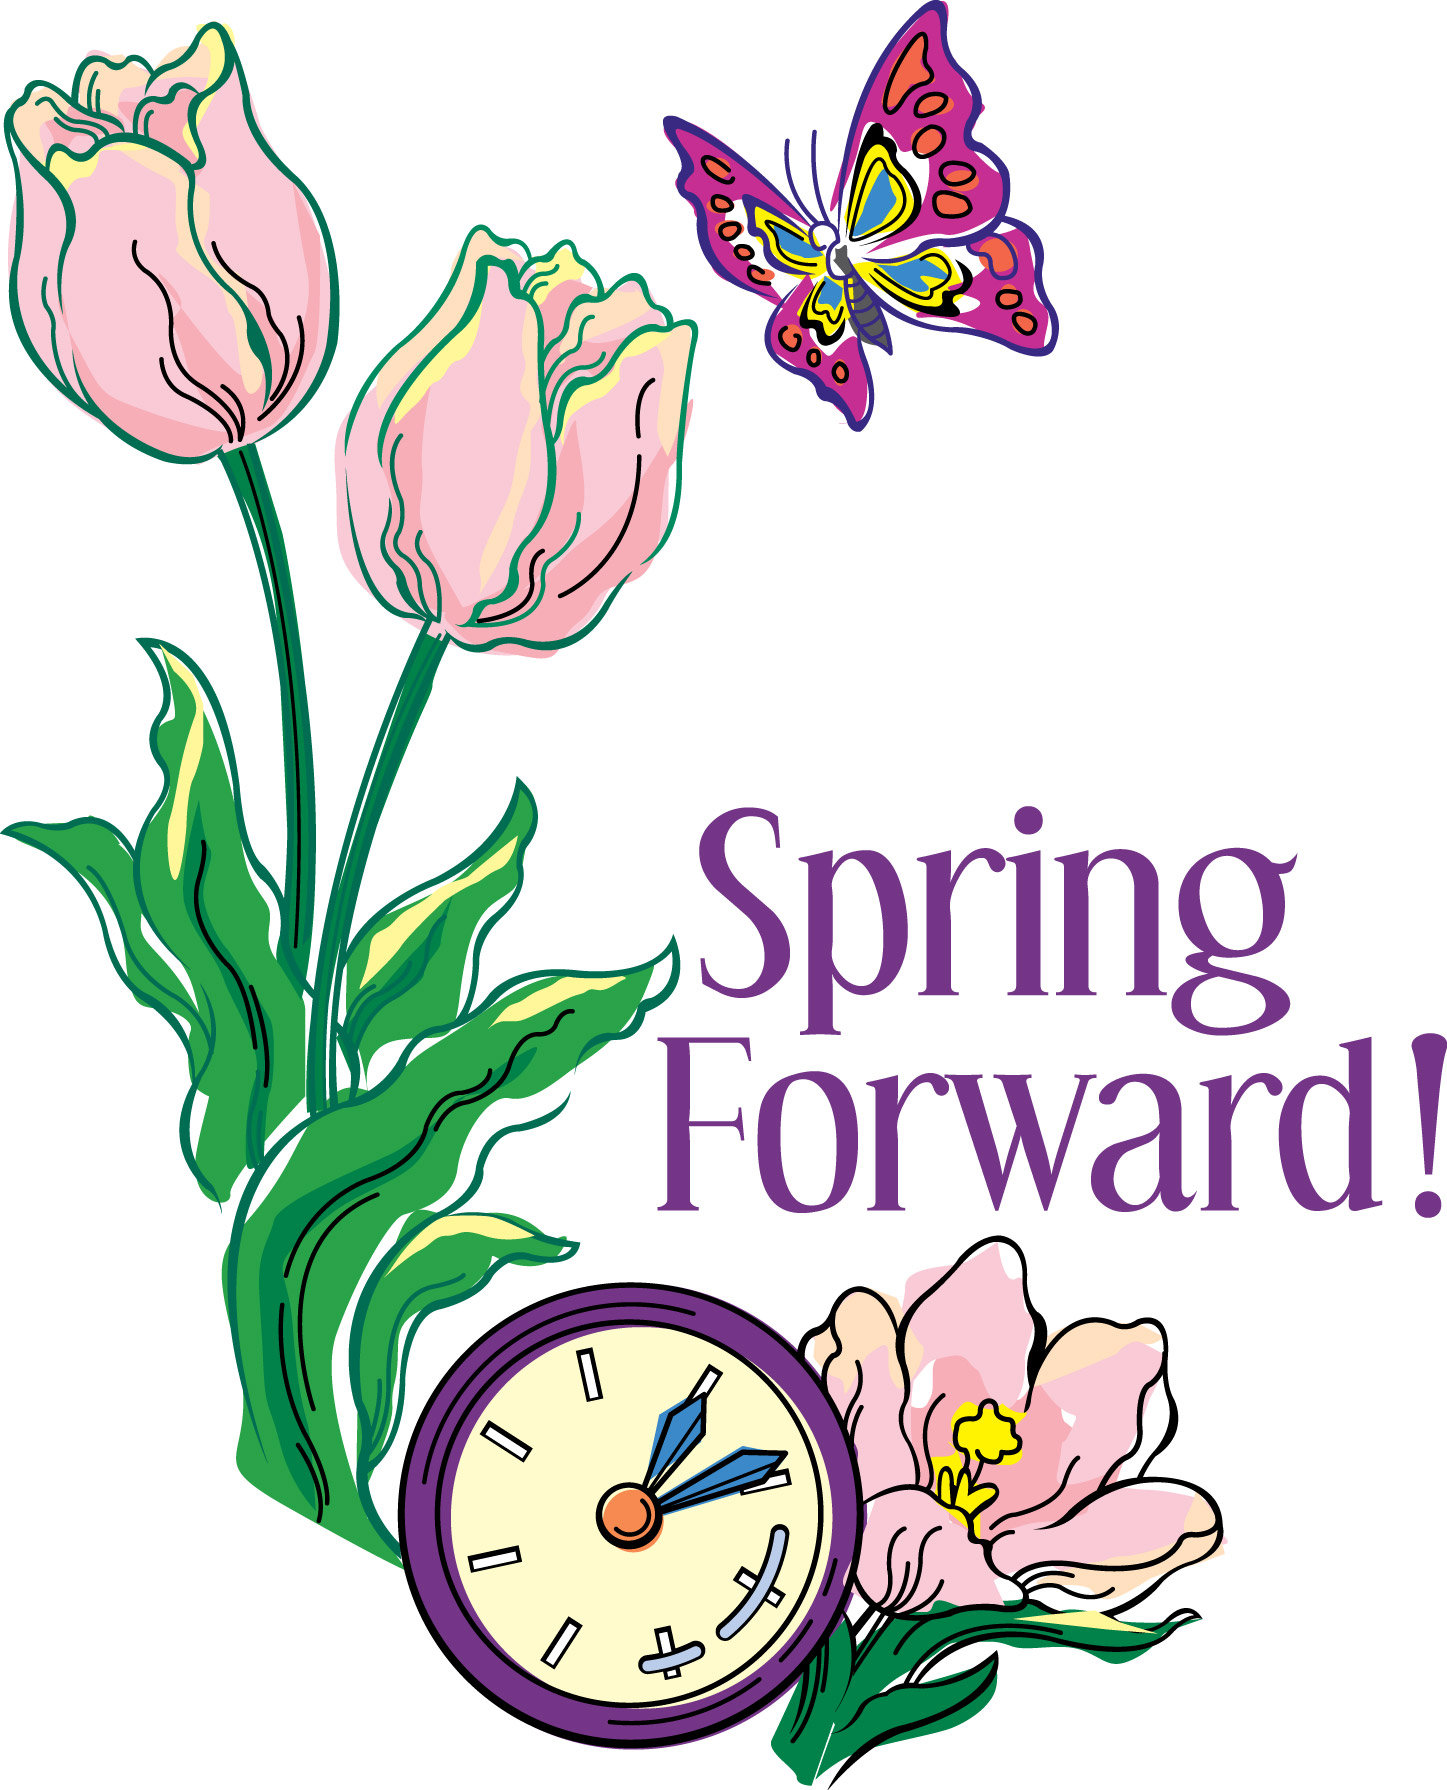 Daylight savings clipart begins. Time sommerset